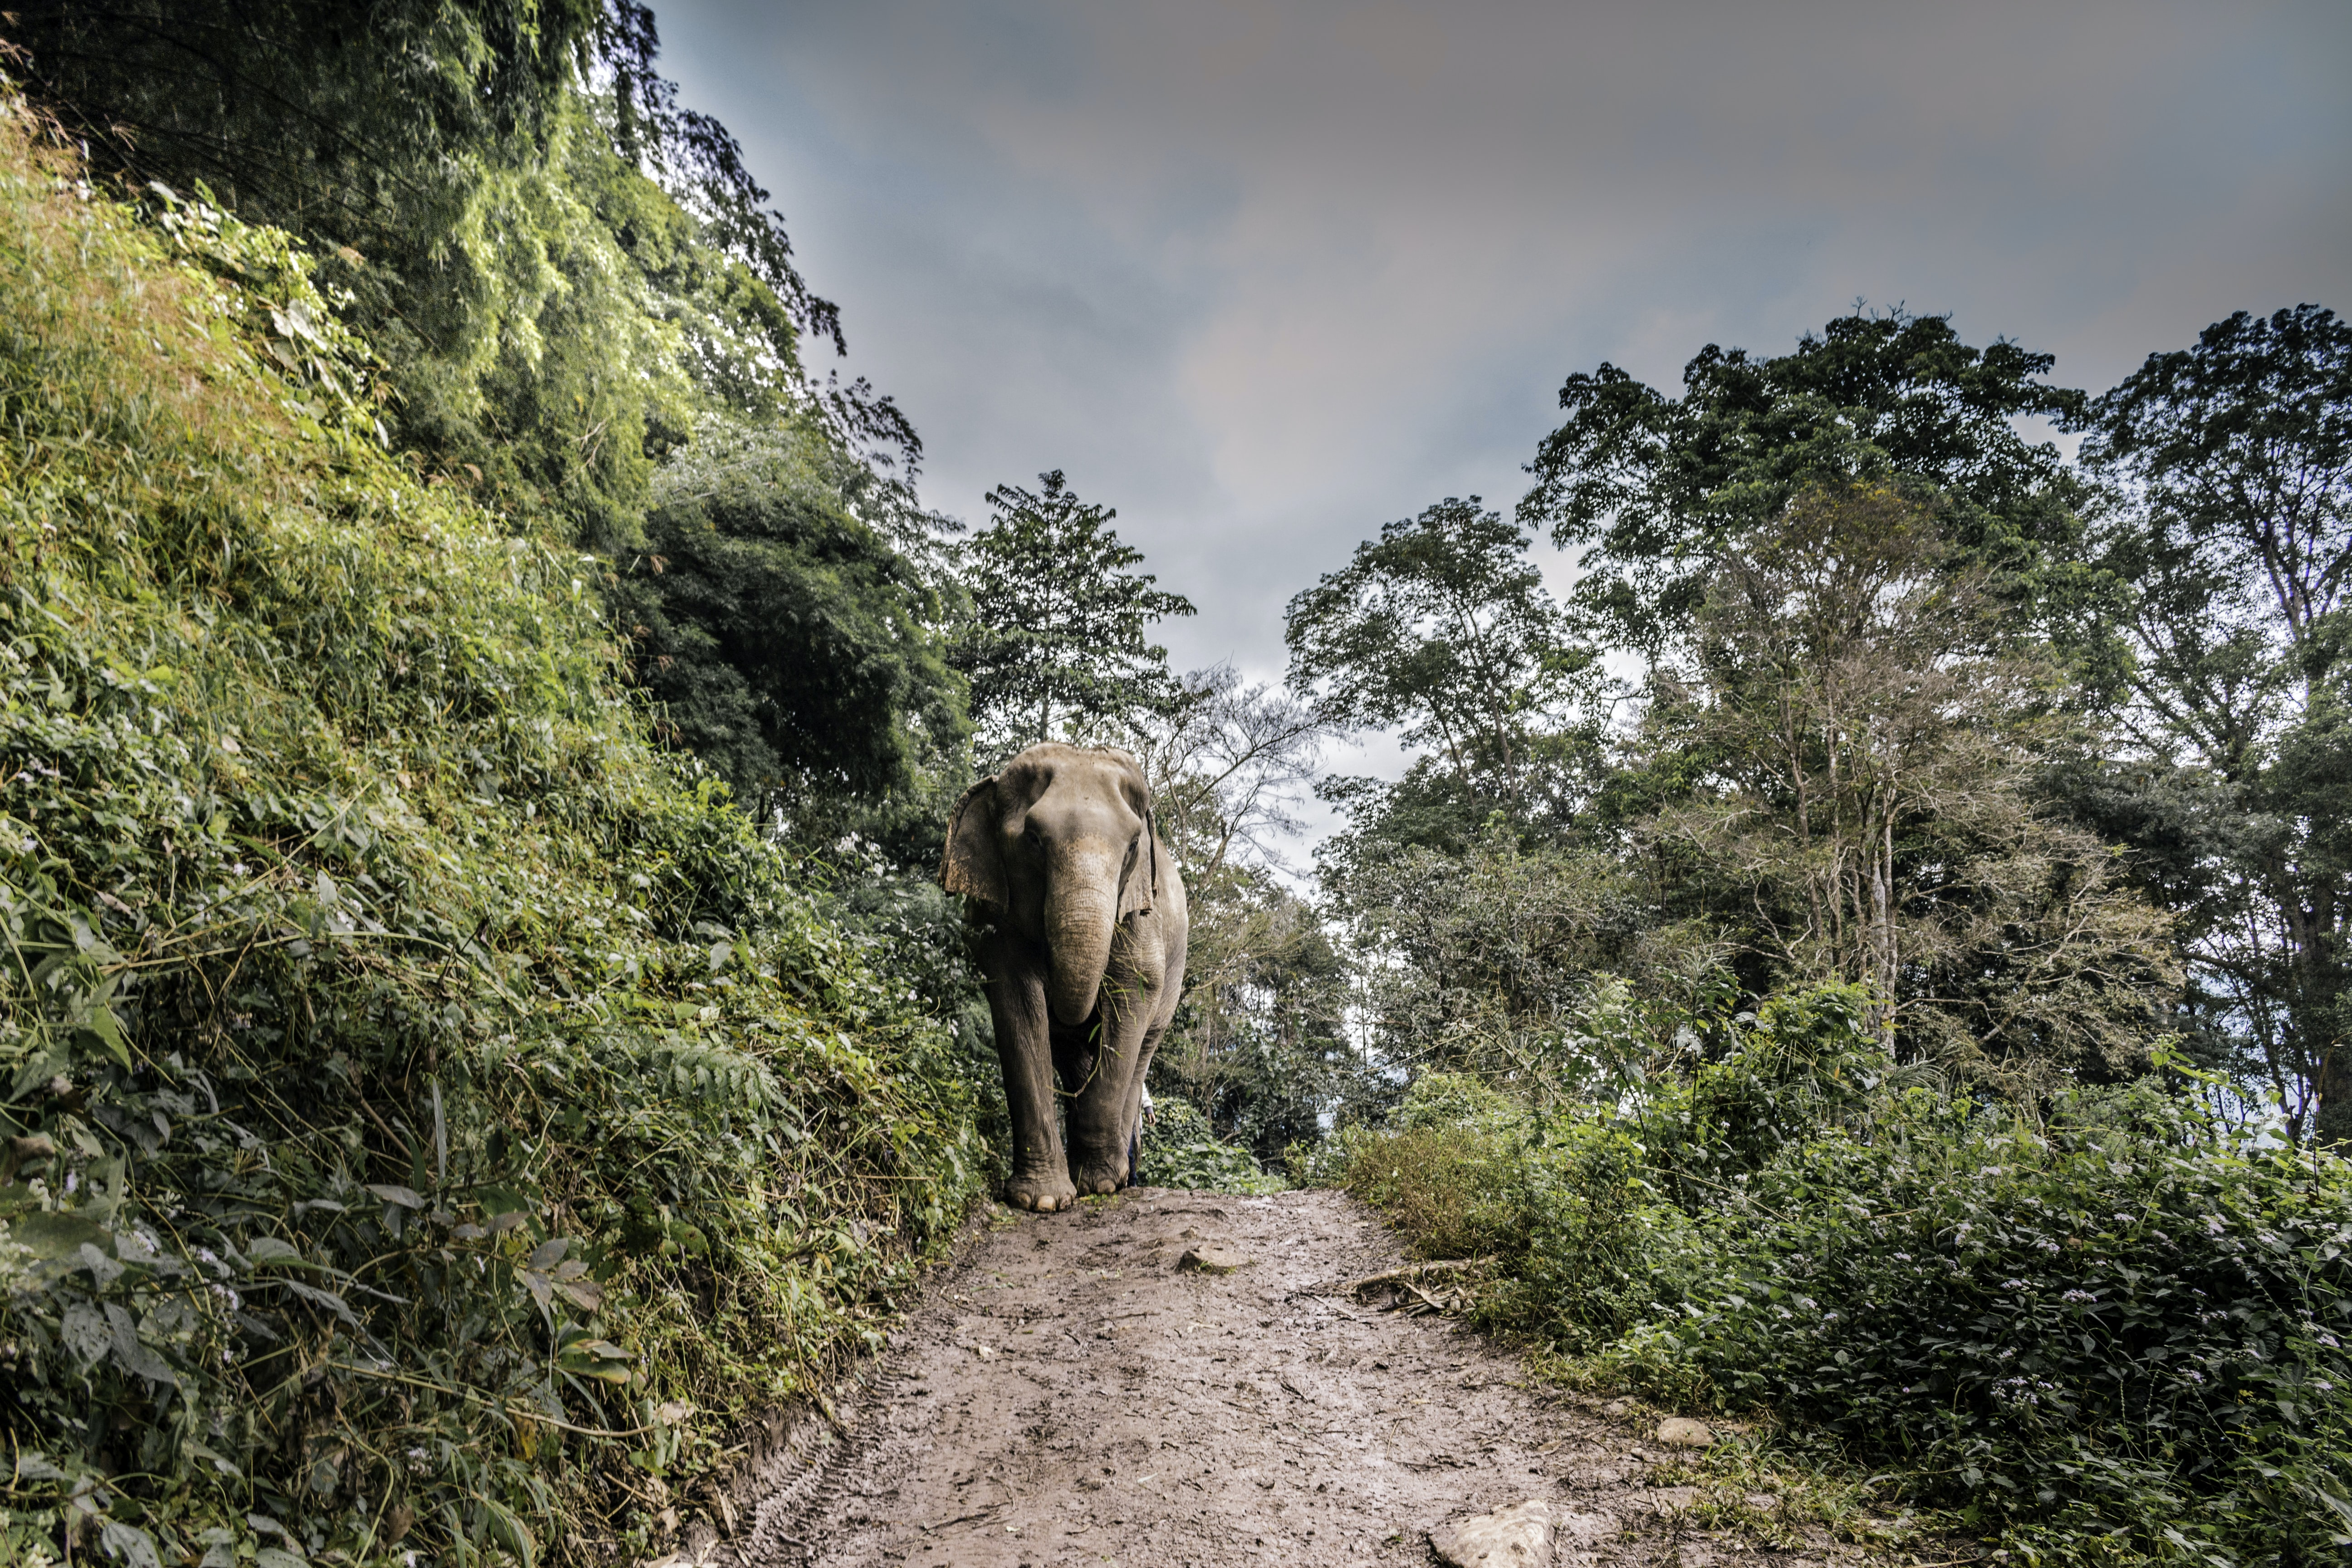 brown elephant walking at middle of walkway beside tree